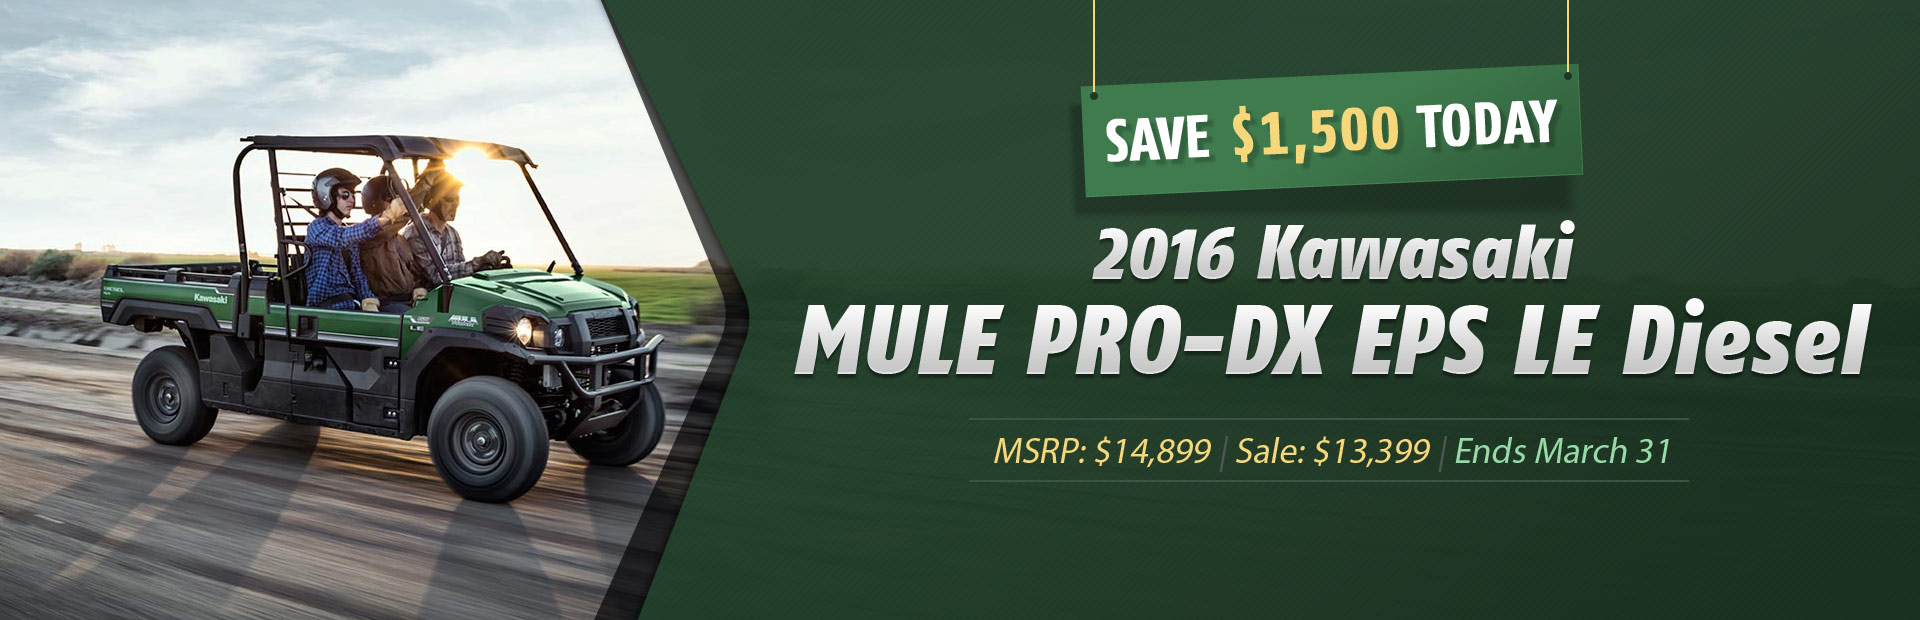 Save $1,500 today on the 2016 Kawasaki MULE PRO-DX EPS LE Diesel!